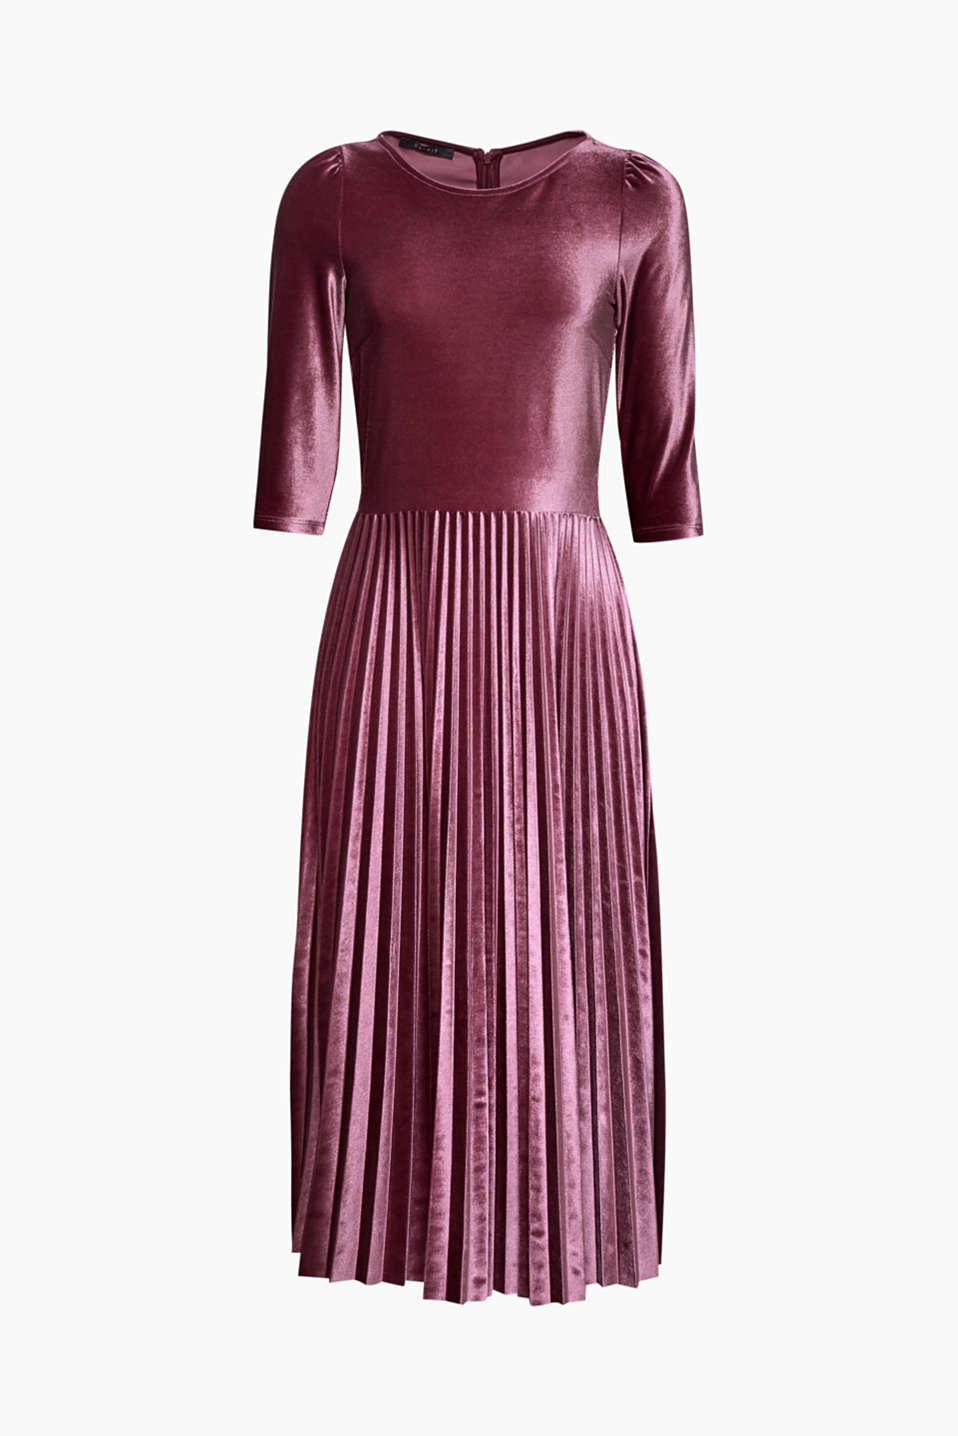 Super stylish, super comfortable: dance the night away in this stretch velvet dress with a midi pleated skirt!